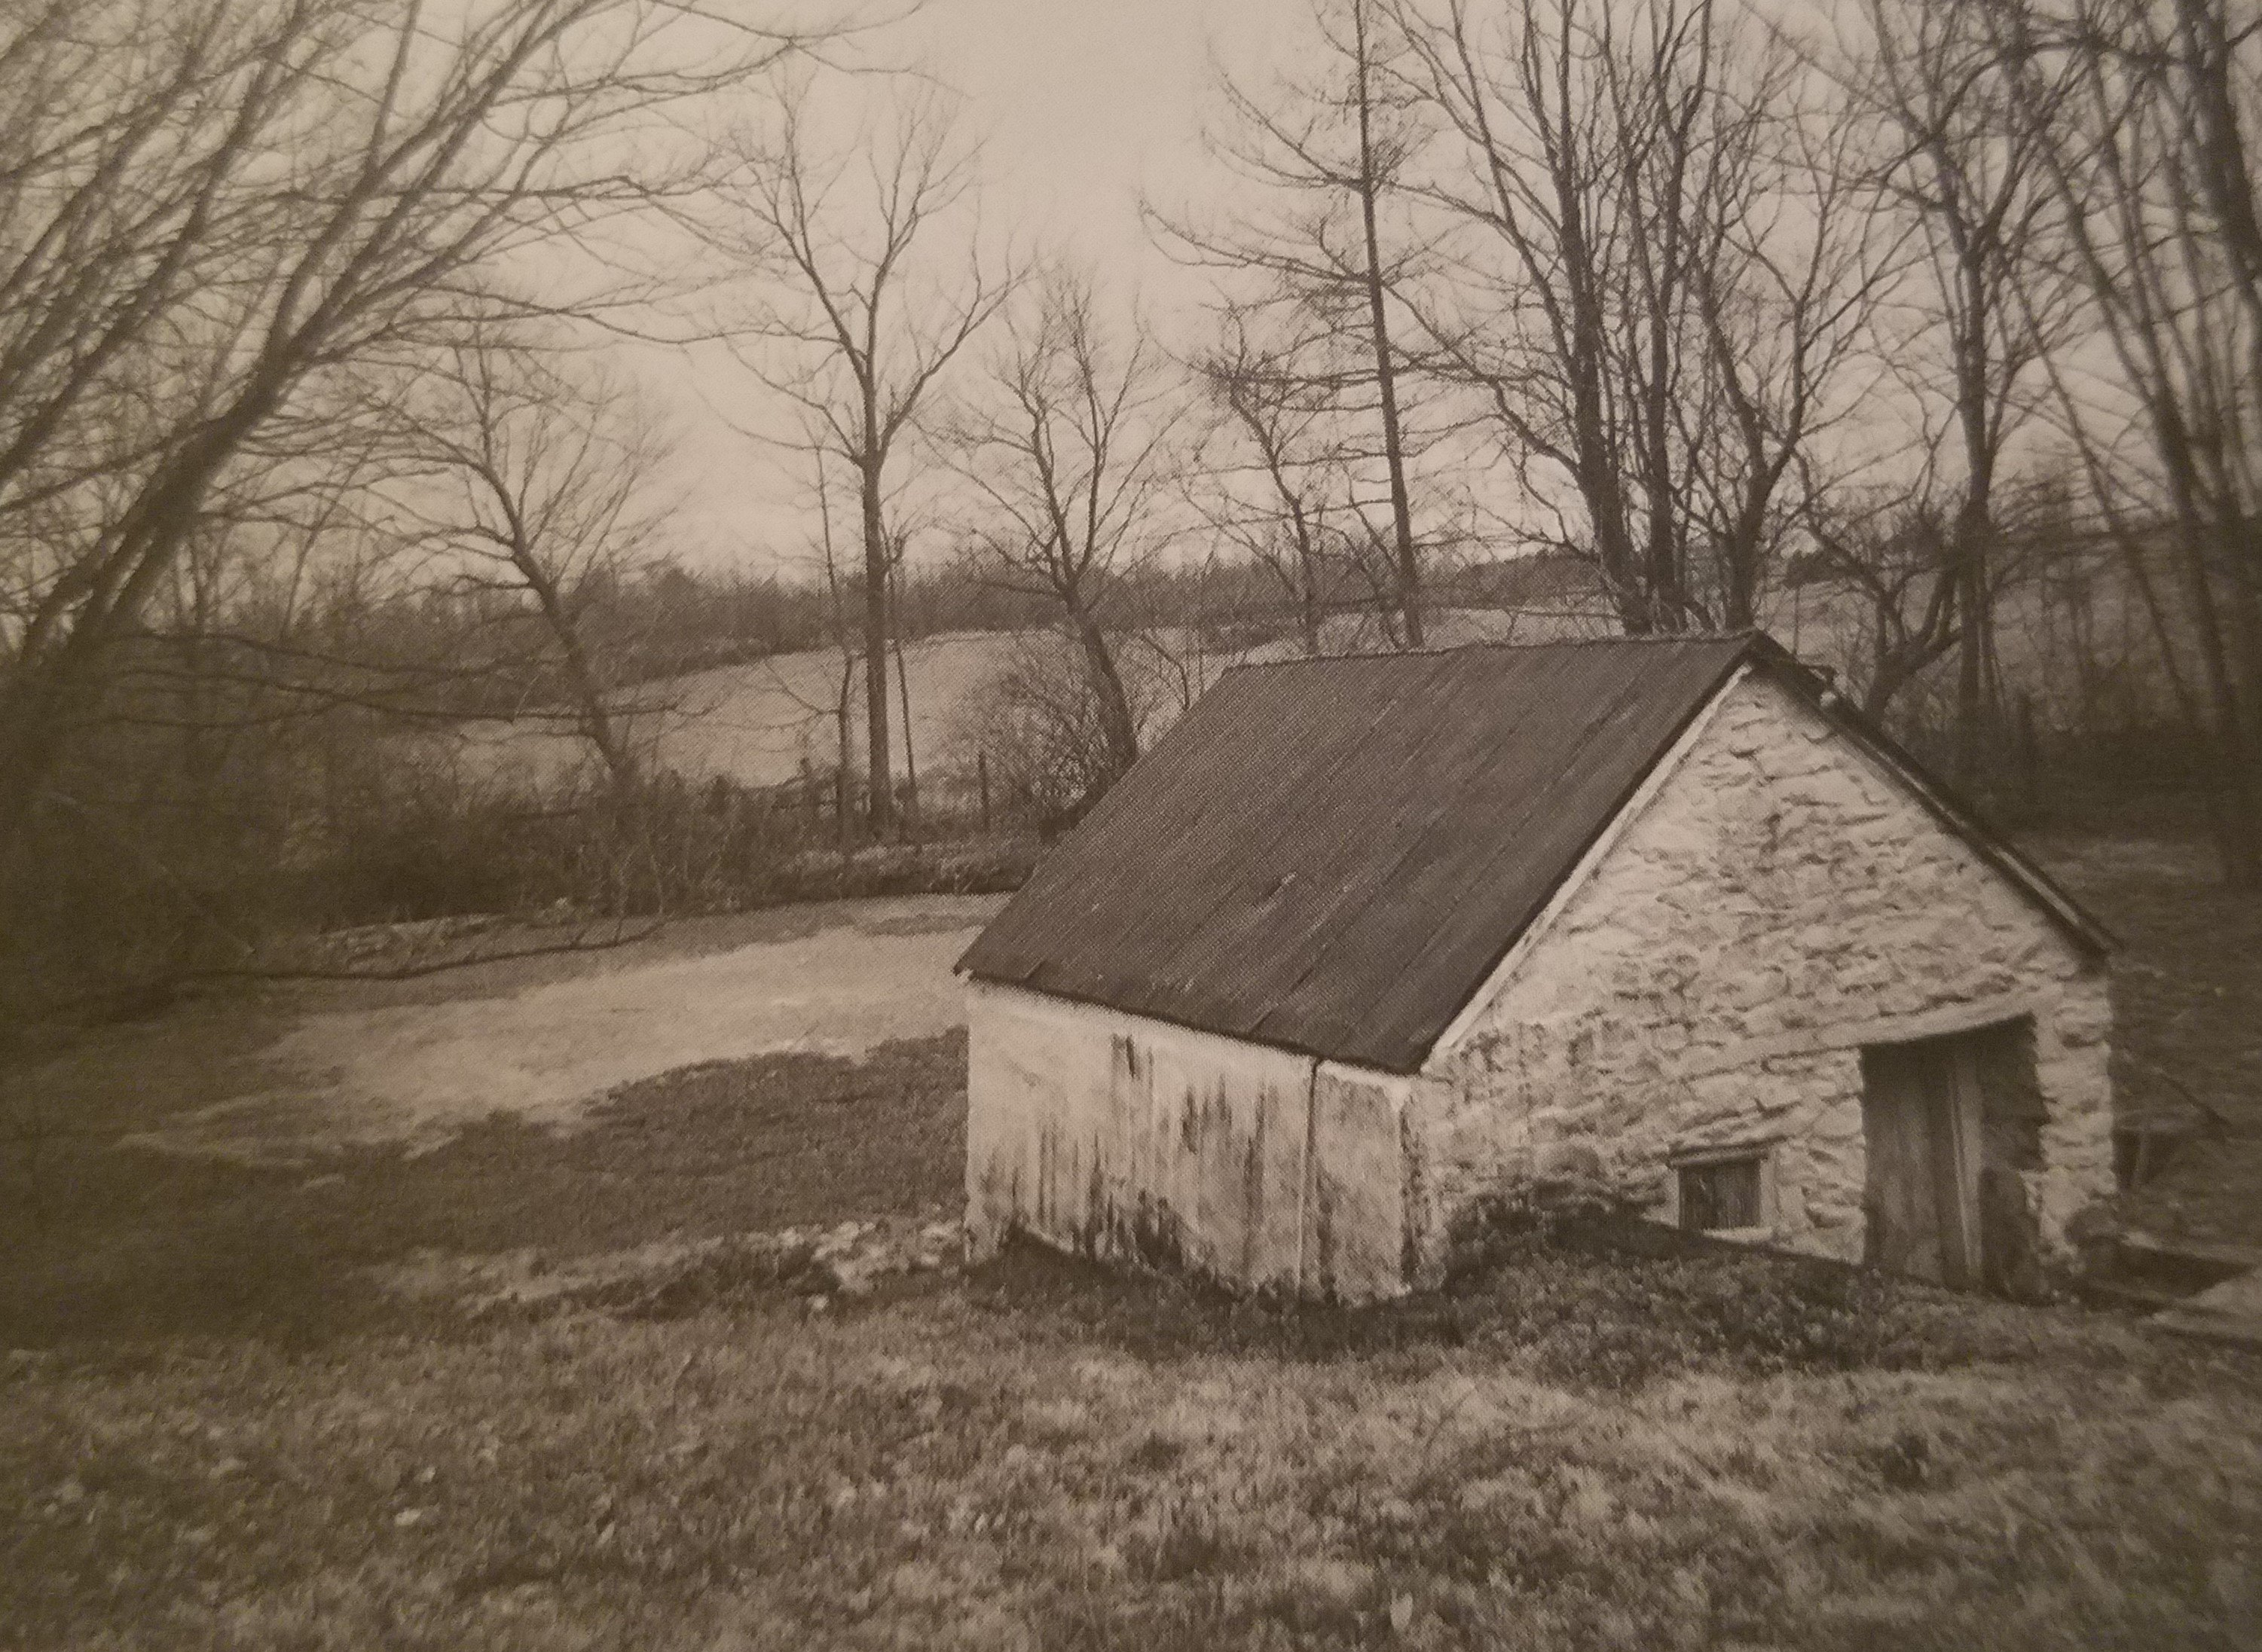 The spring house at Elmwood provided fresh water for the household.